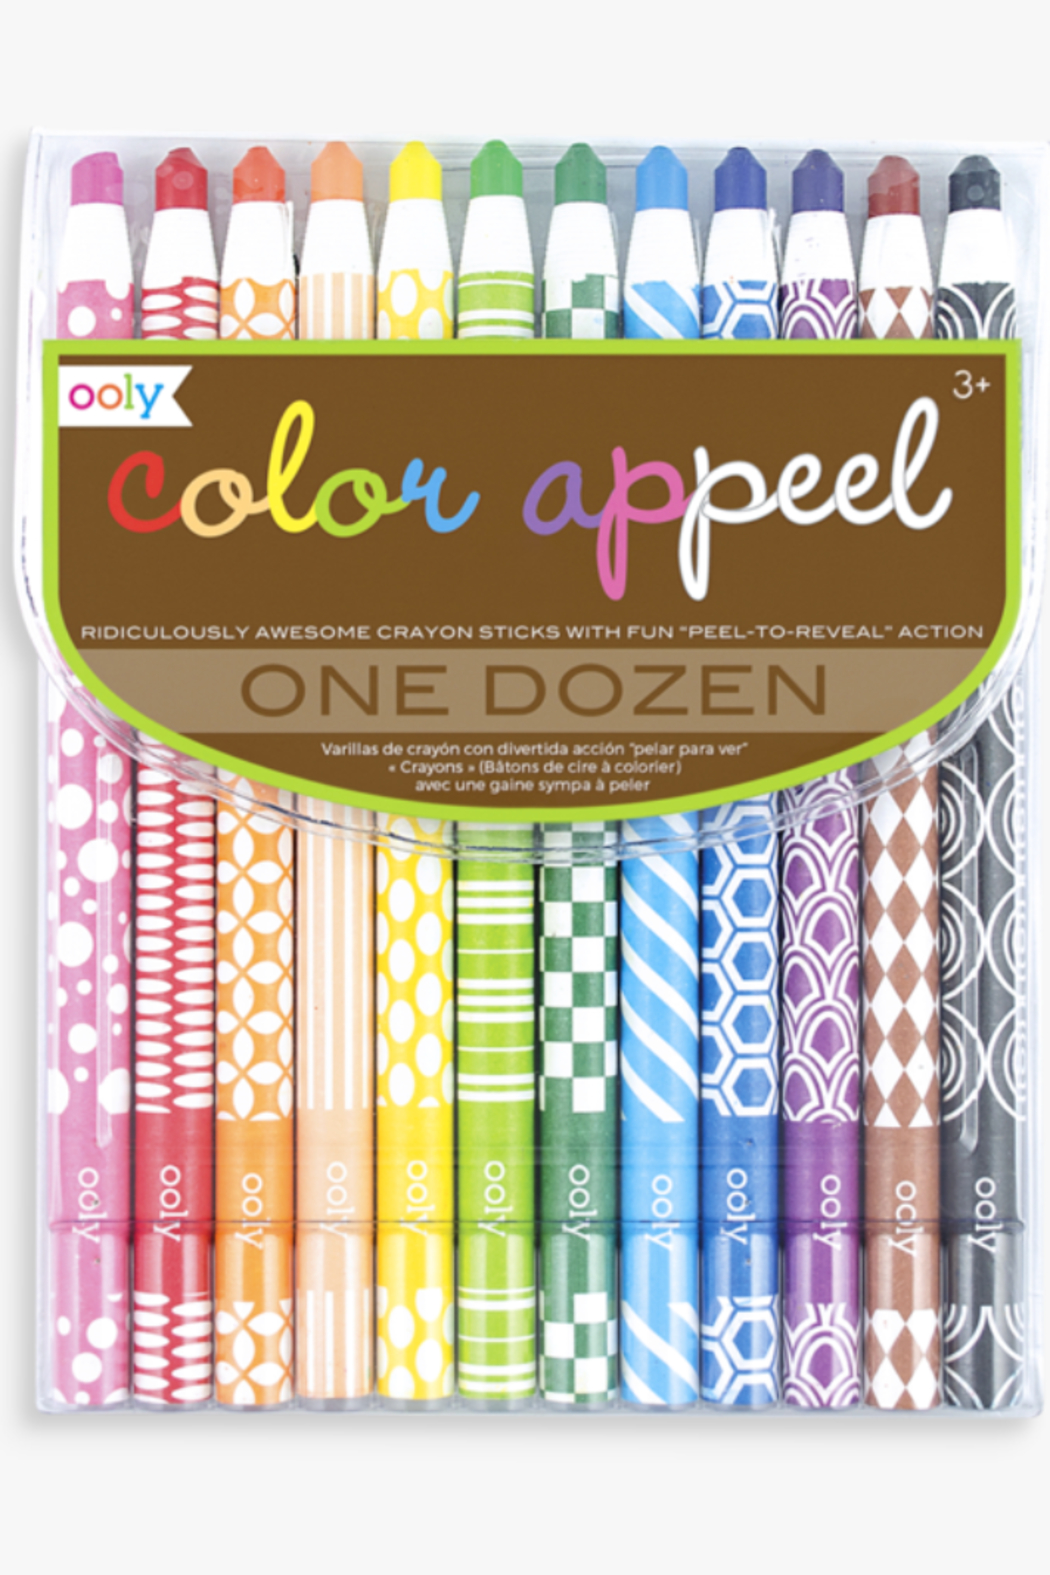 Ooly Color Appeel Crayon Sticks - Main Image